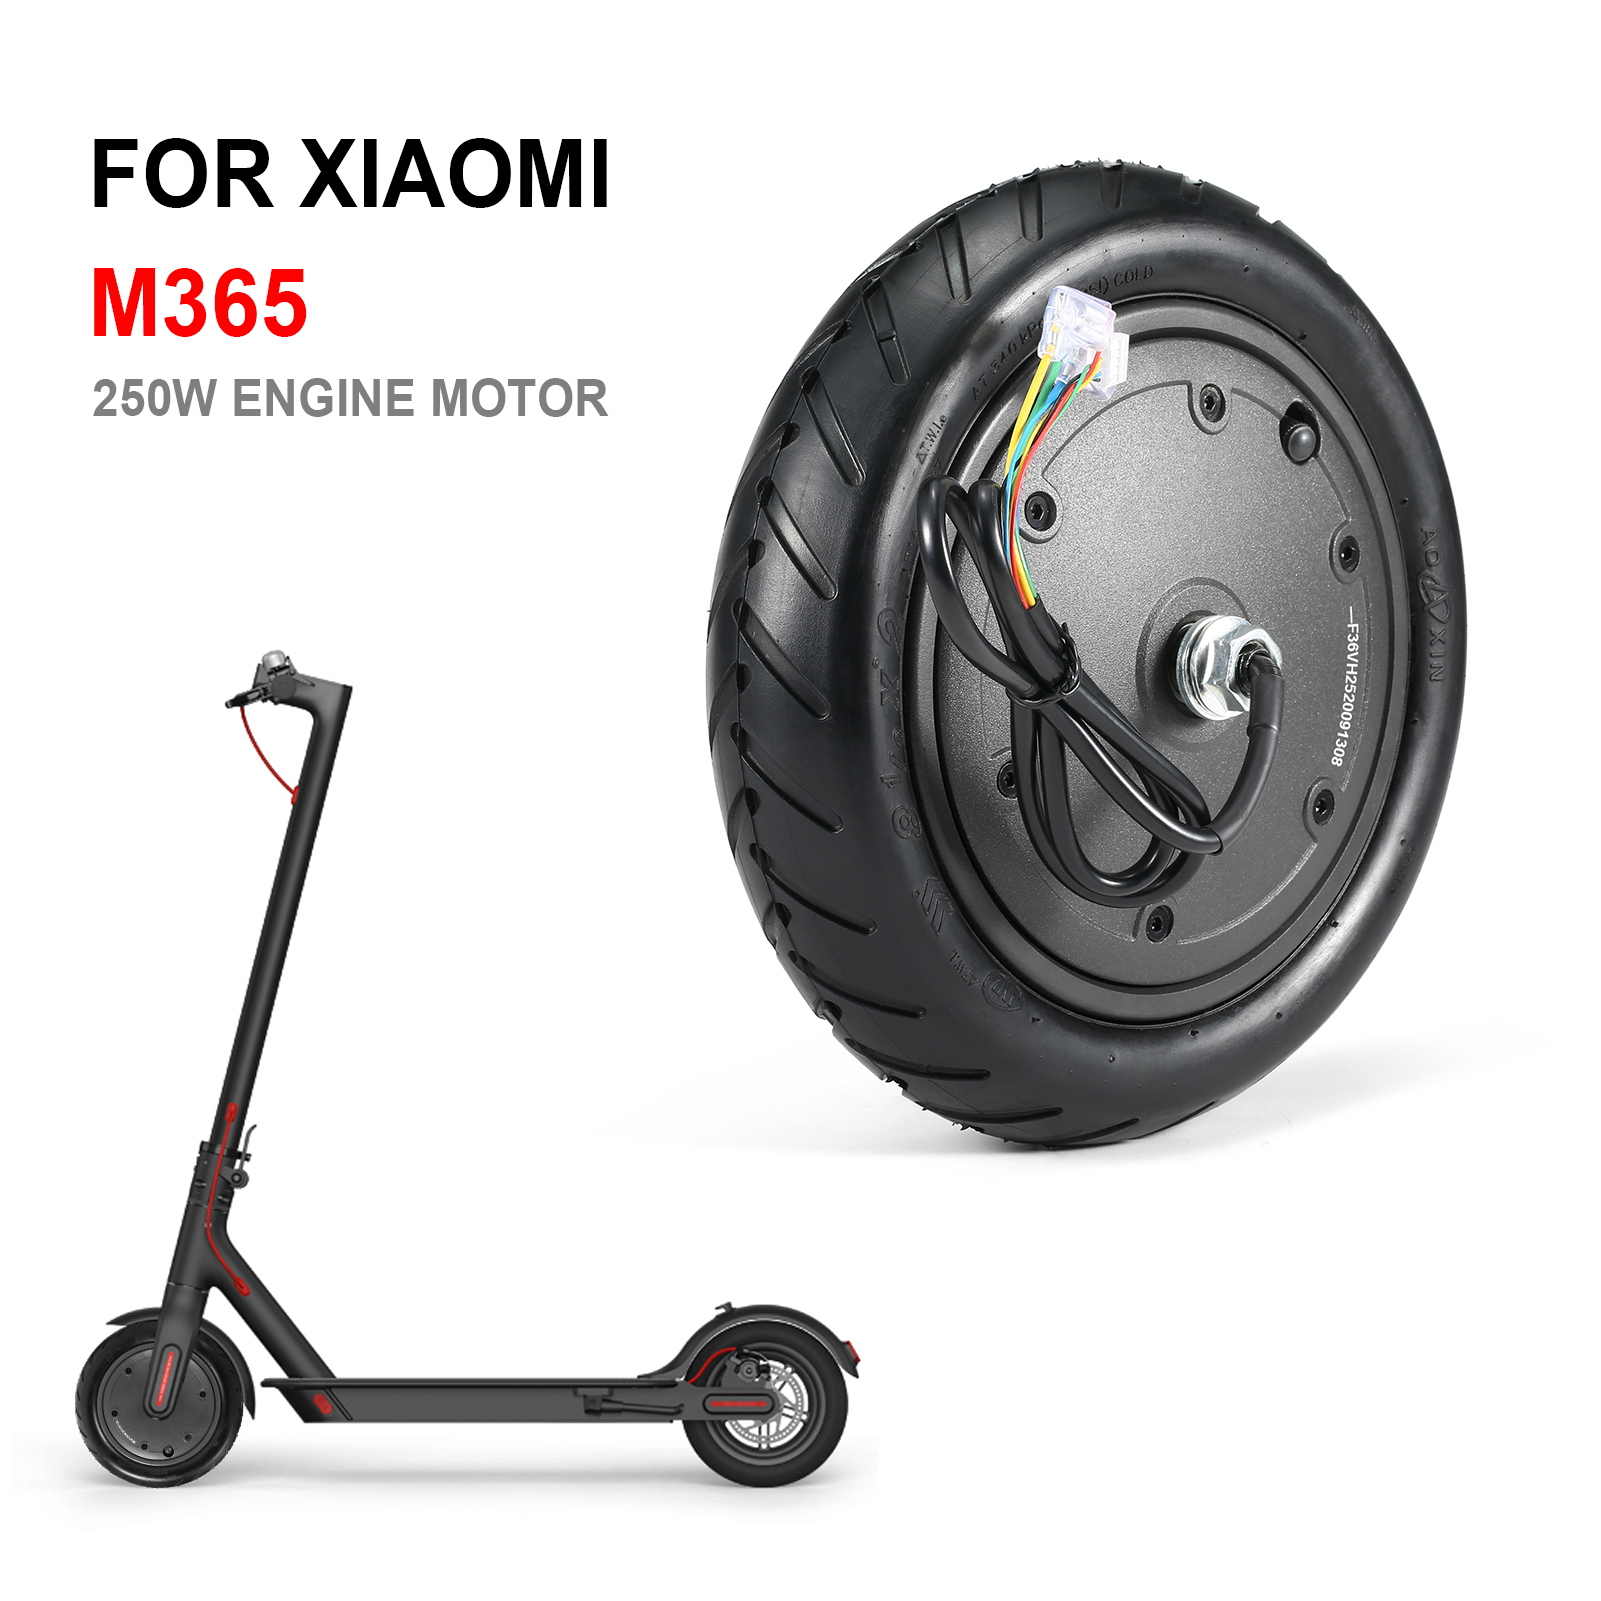 Details about  /250W Motor Wheel Tire for Xiaomi M365 Electric Scooter Tyre Replacement Part